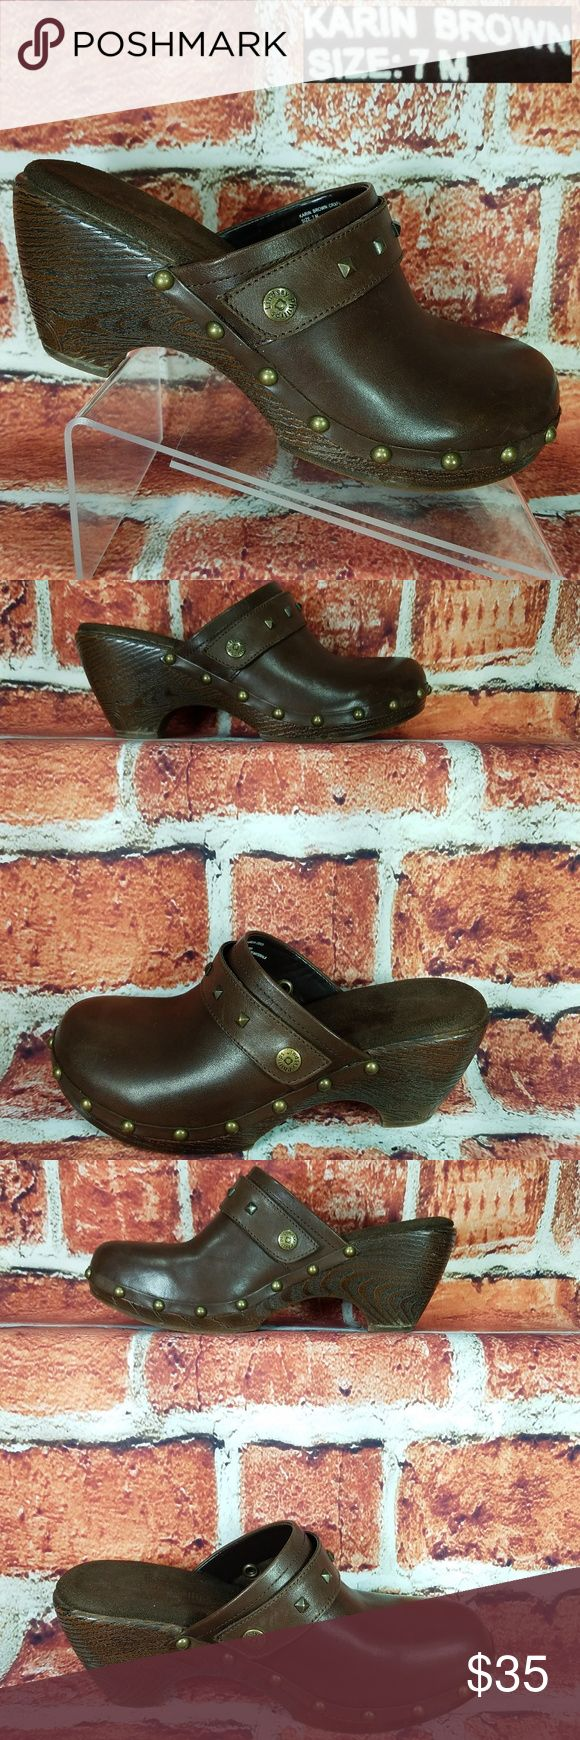 Lindsay Phillips Sz 7 Lindsay Phillips Women Karin Studded Slip on Mules Clogs Size 7 Brown Open Back  Condition: Great Minimal Scuffing Photos are best description Size: 7 Lindsay Phillips Shoes Mules & Clogs